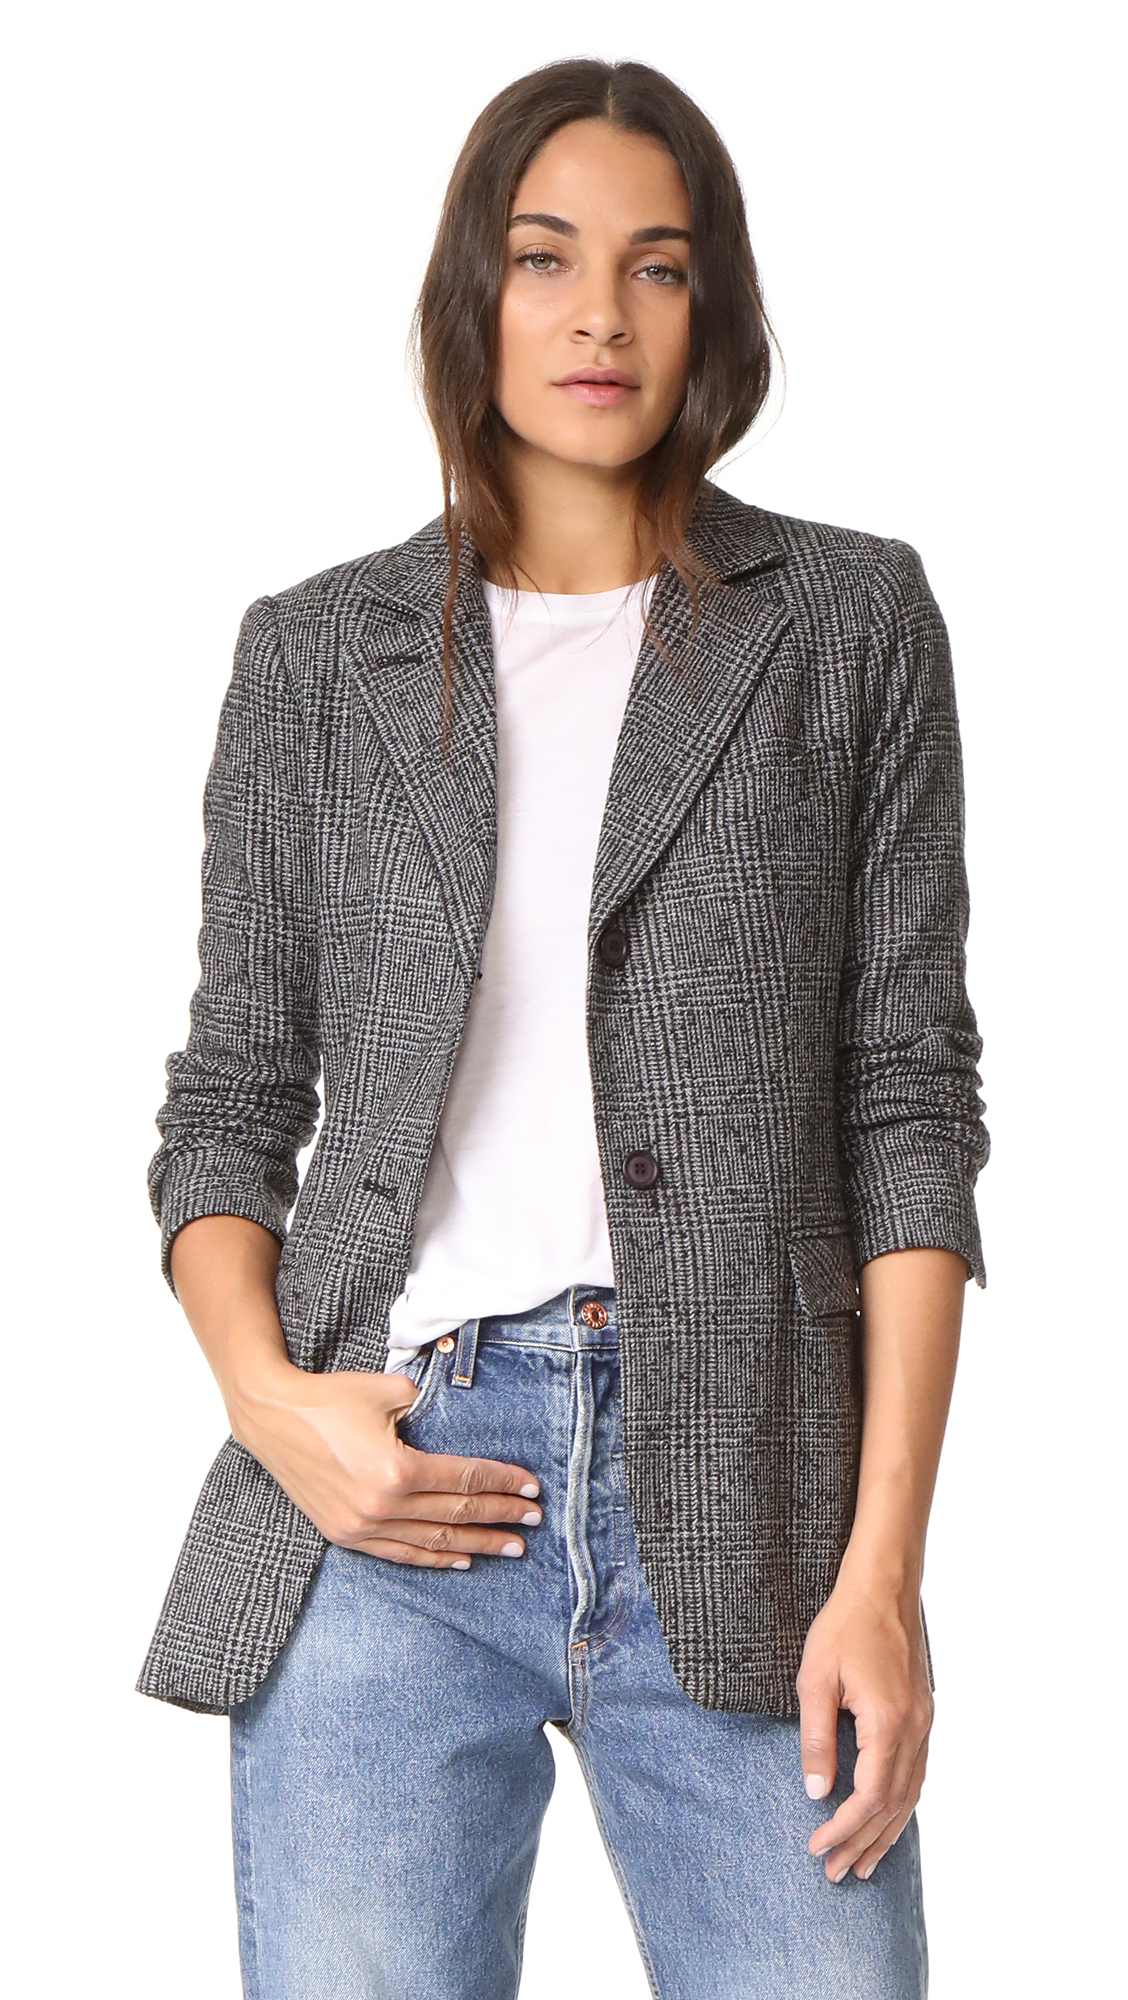 SMYTHE Original Boyfriend Blazer - Dark Glen Check